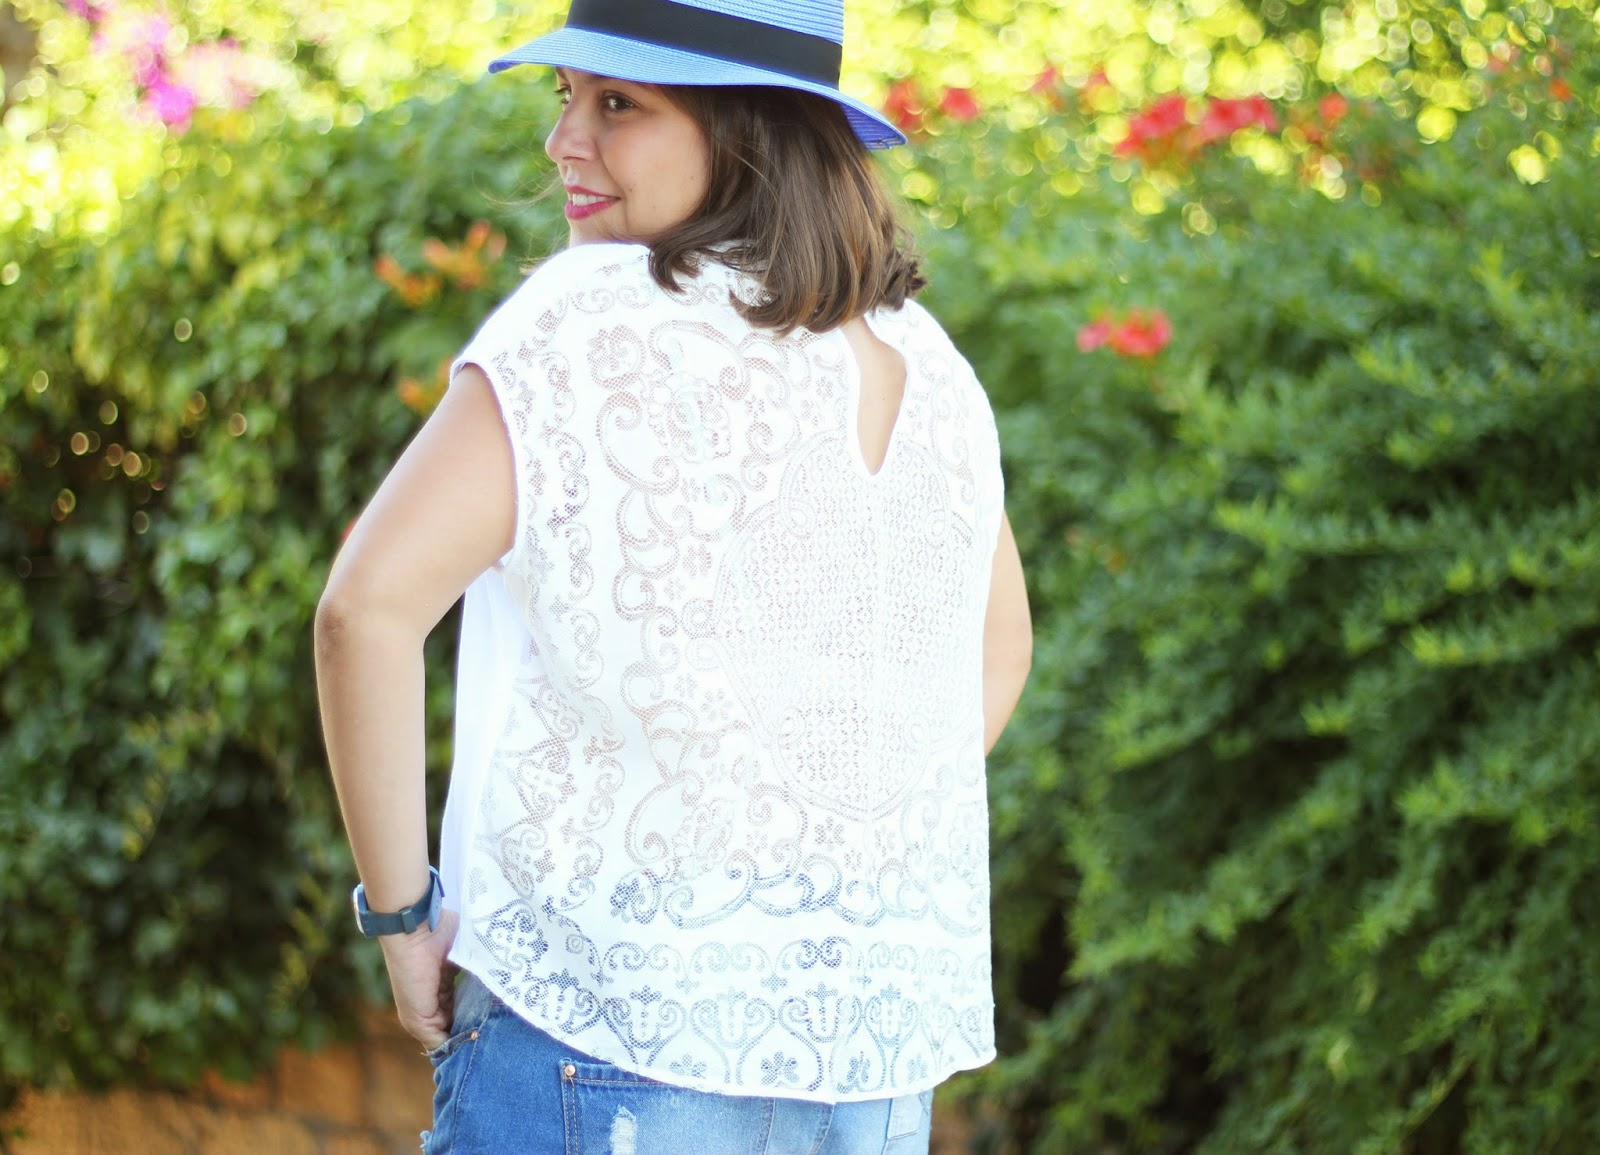 photo-look-street_style-denim_shorts-white_shirt-blue_hat